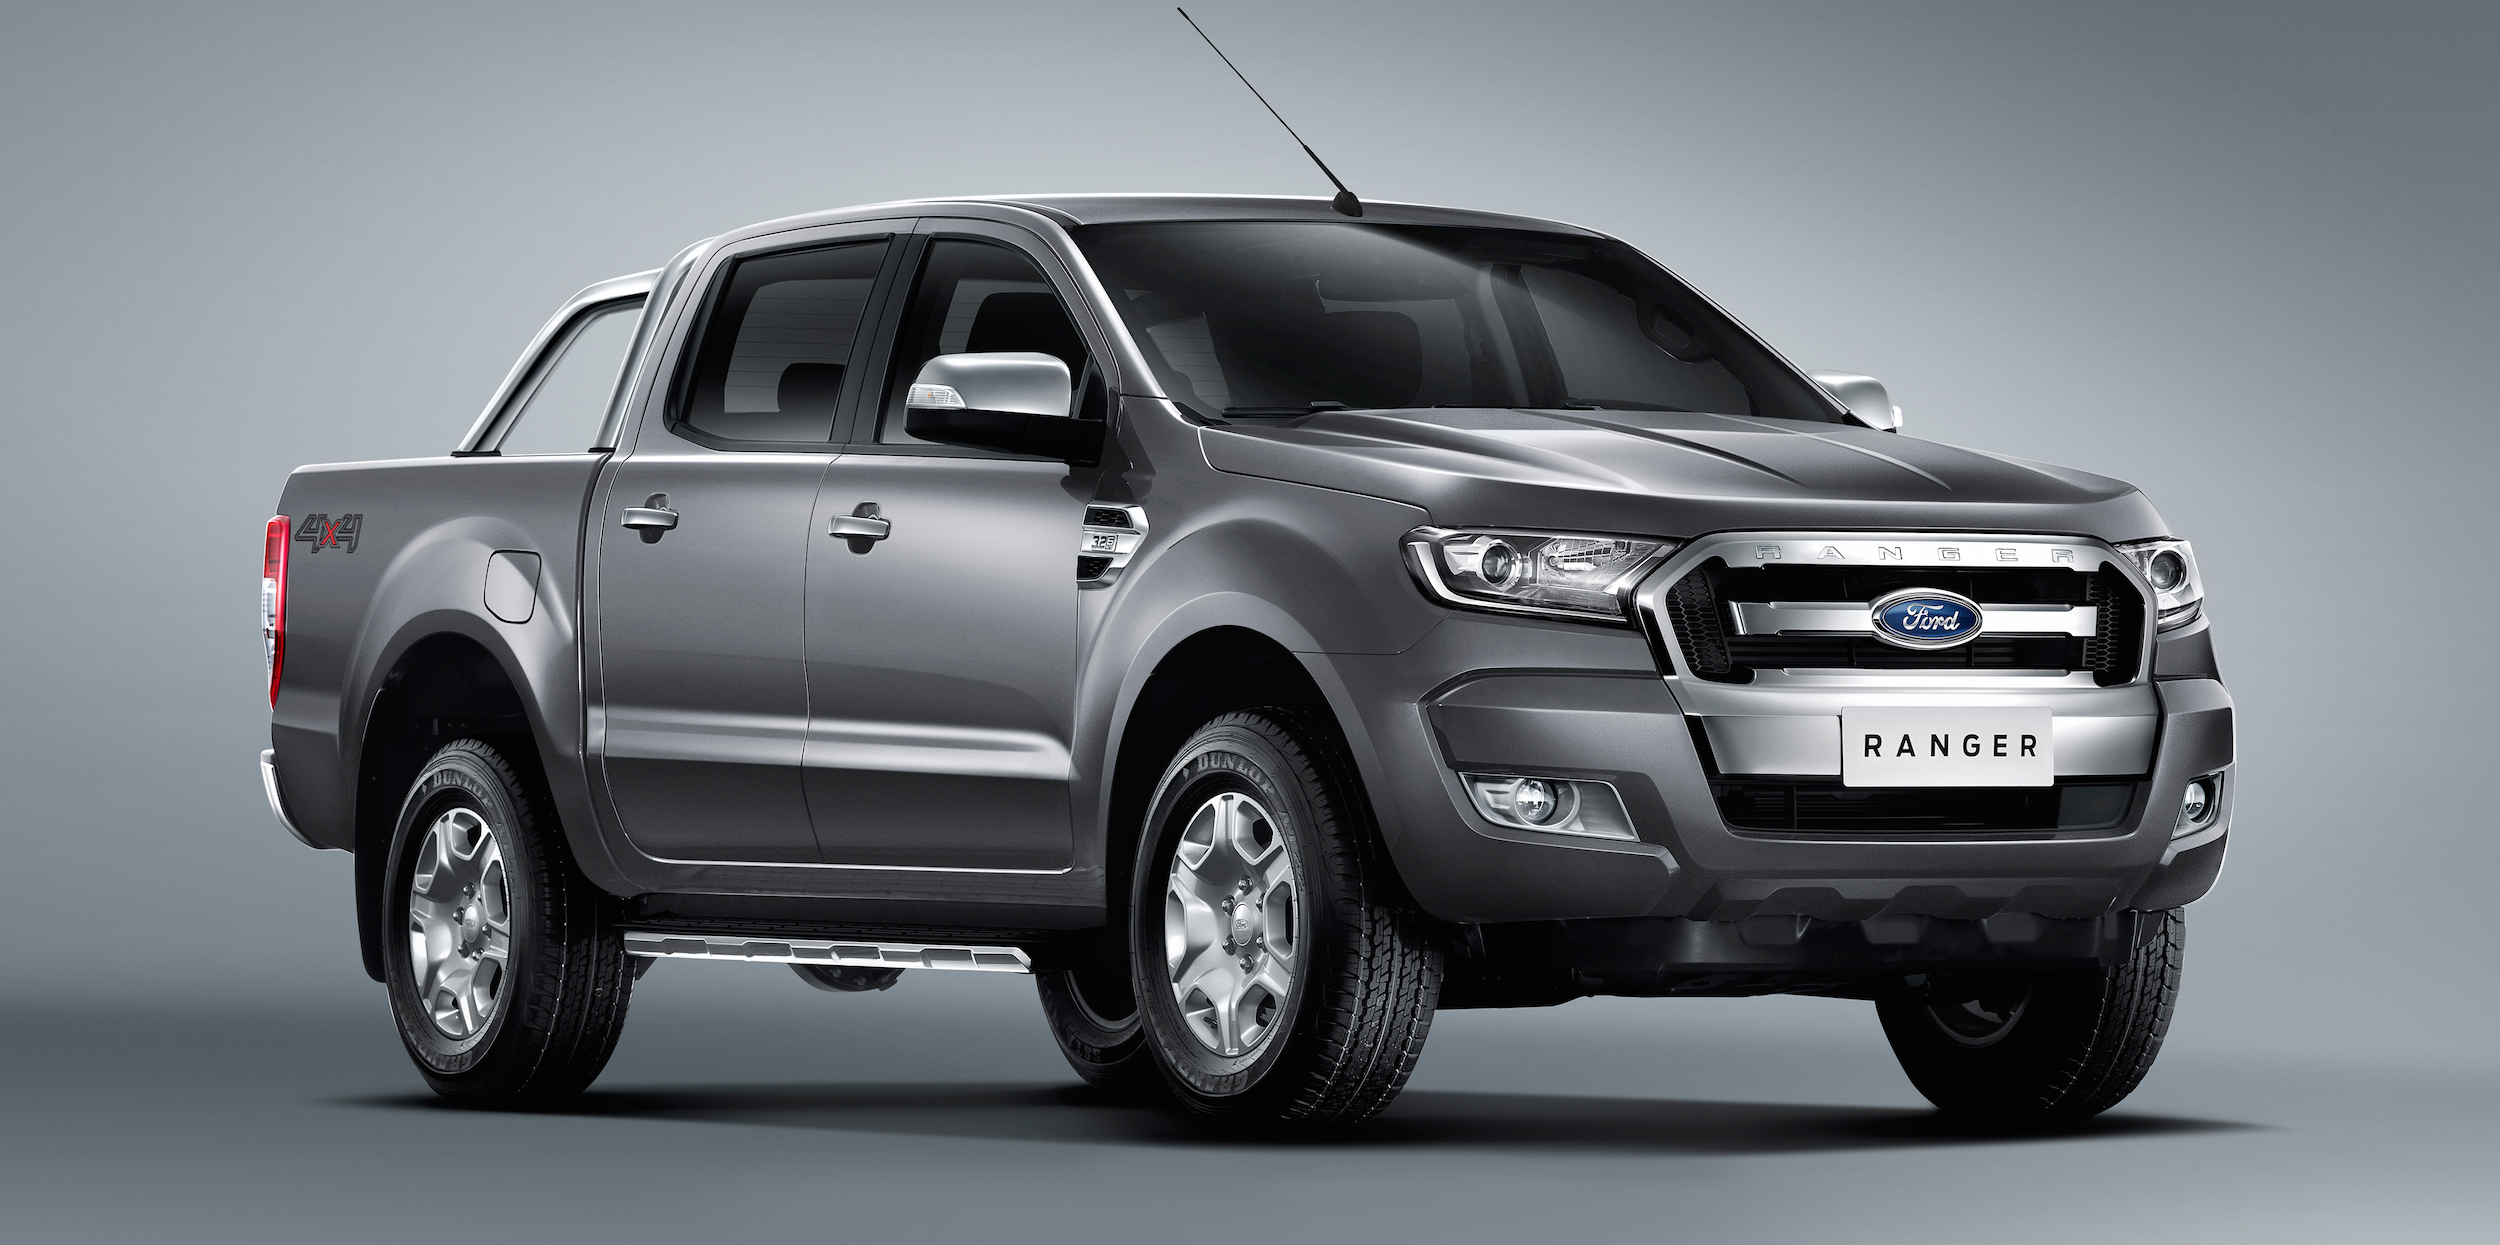 2016 toyota hilux versus ford ranger mitsubishi triton. Black Bedroom Furniture Sets. Home Design Ideas